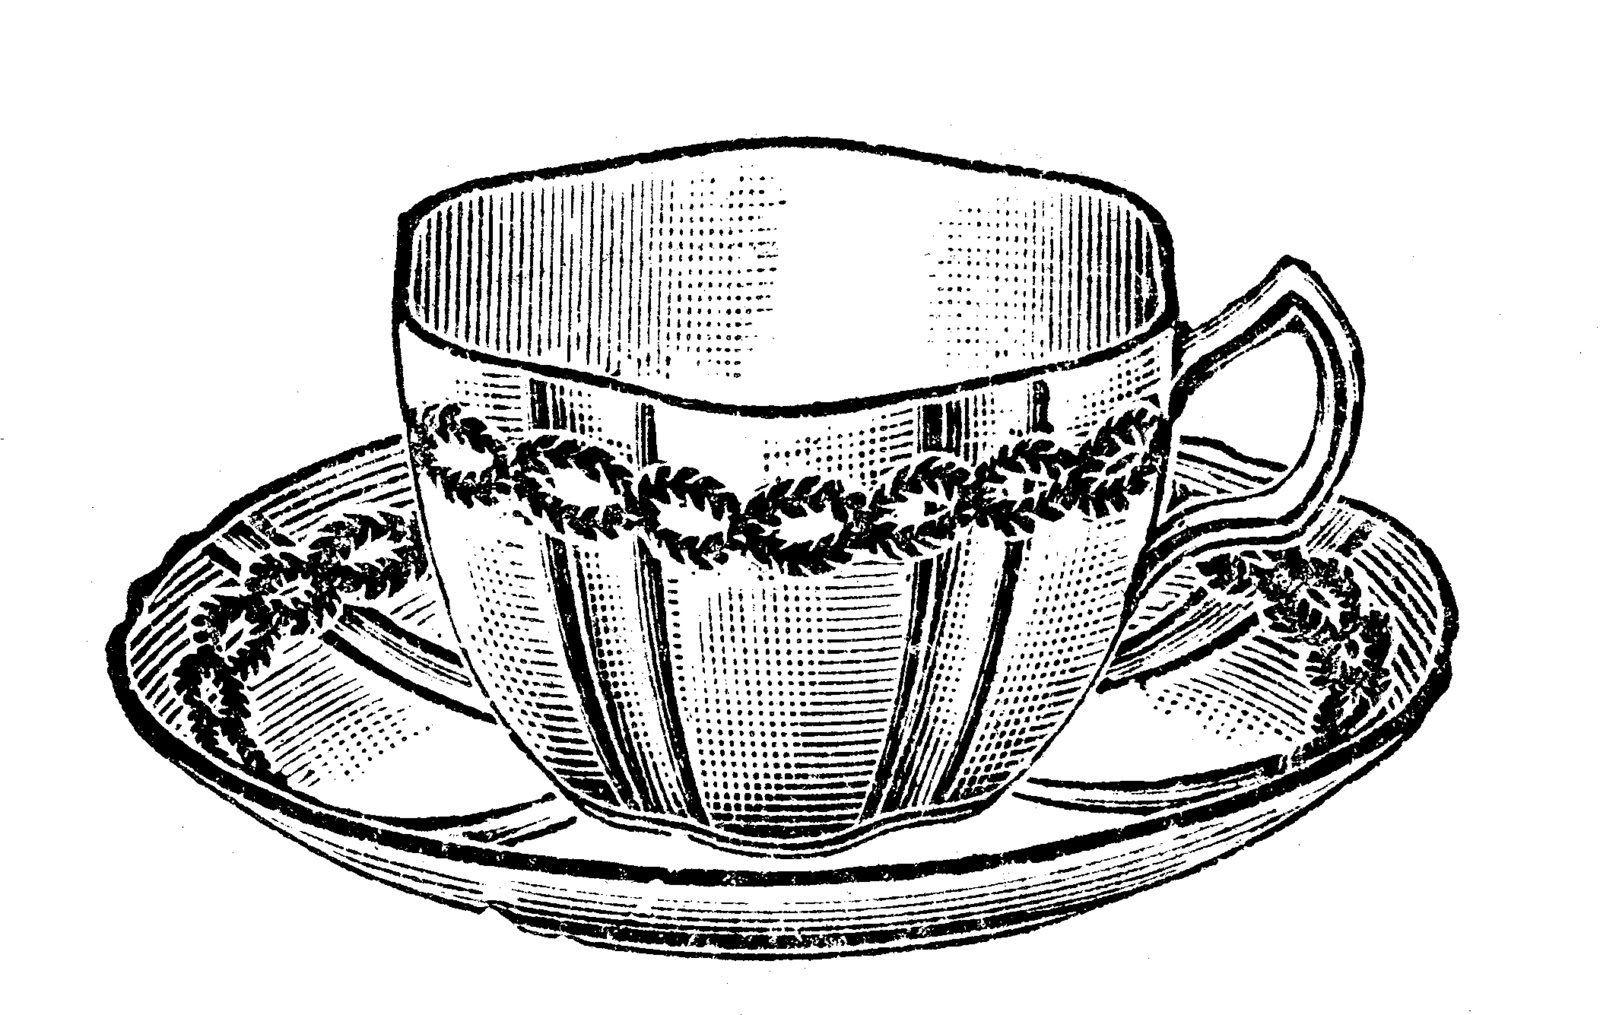 tea cup clipart black and white - photo #46